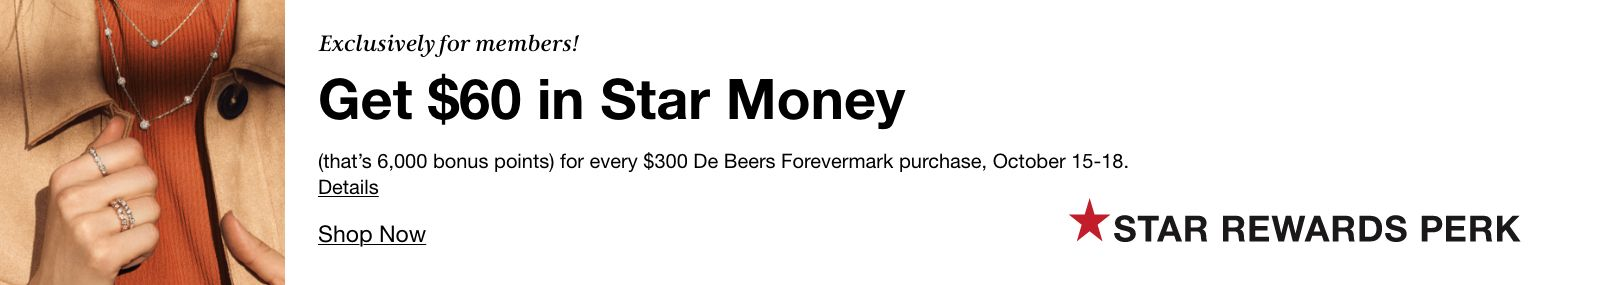 Exclusively for members! Get $60 in Star Money (that's 6,000 bonus points) for every $300 De Beers Forevermark purchase, October 15-18